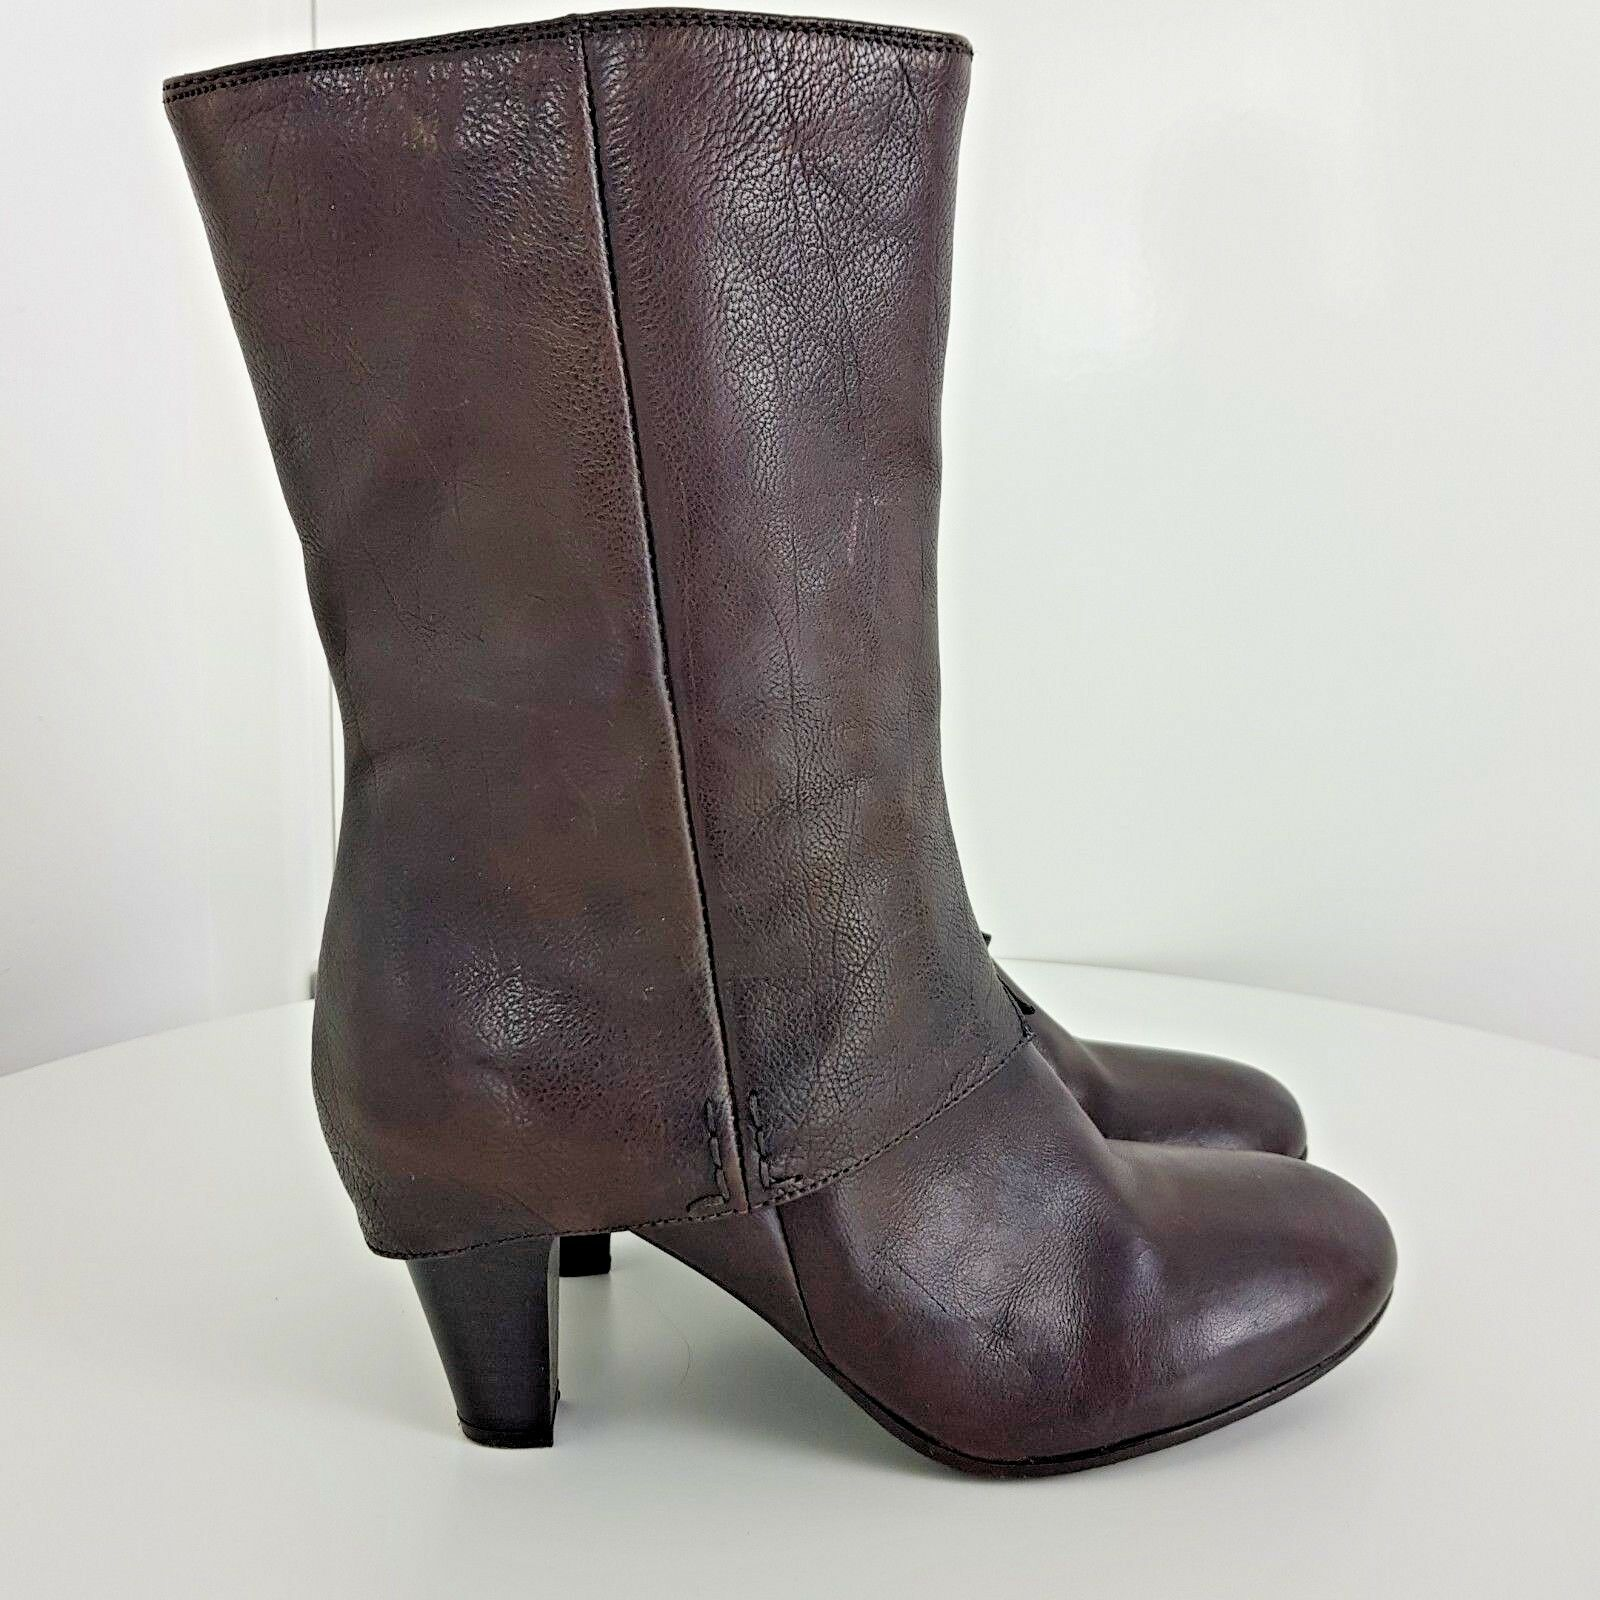 Clarks bottes Leather Calf Heels chaussures Zipped Dusty marron Taille UK 6.5 EU 39.5